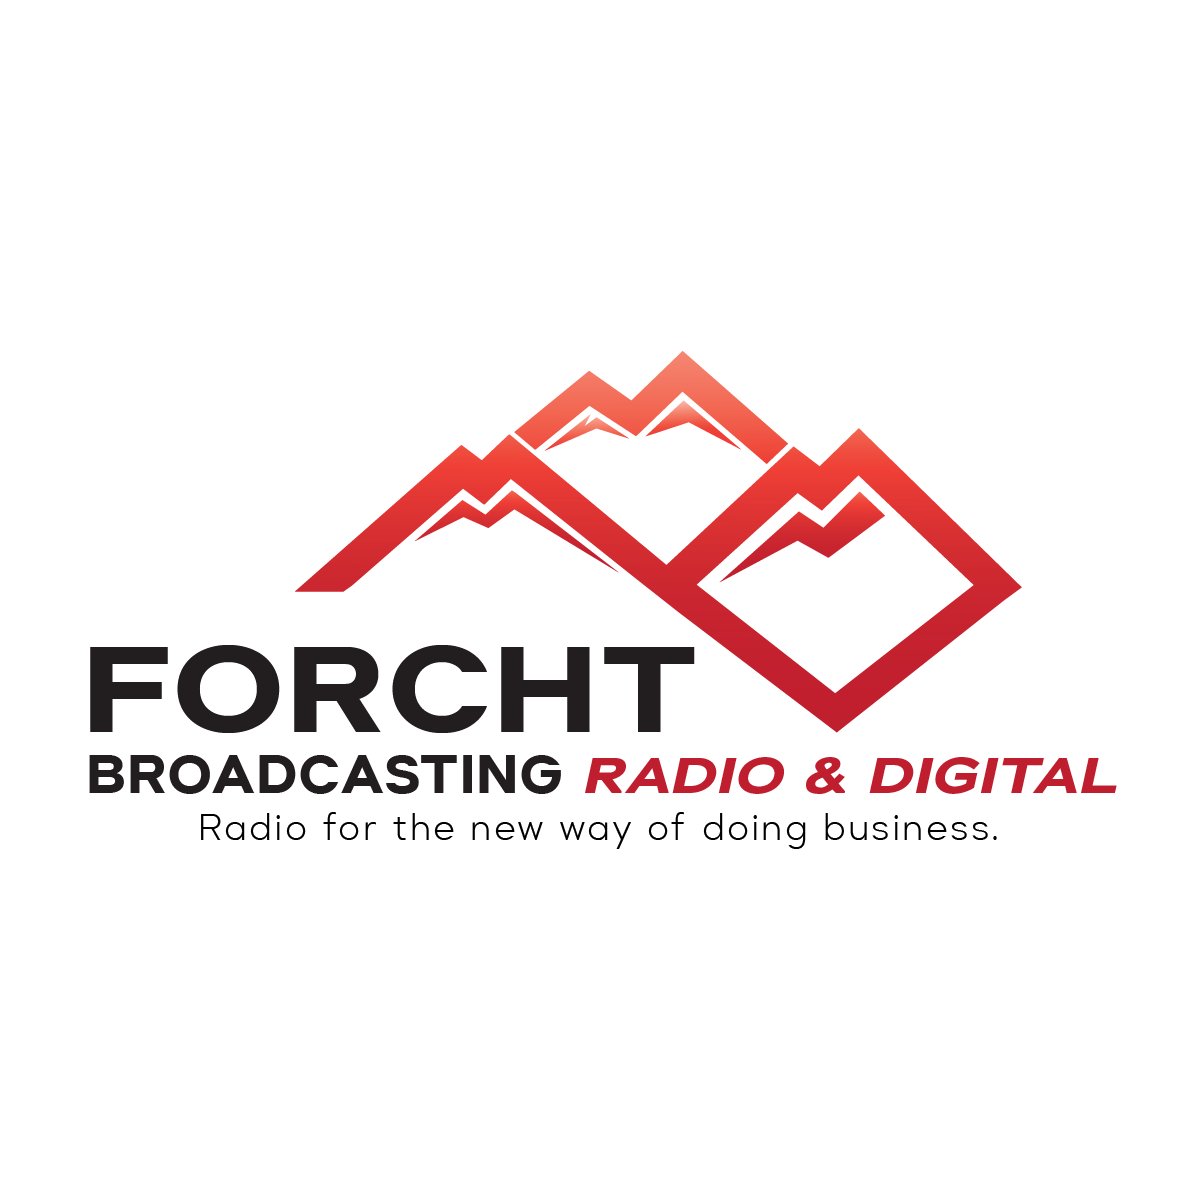 Forcht Broadcasting Radio and Digital